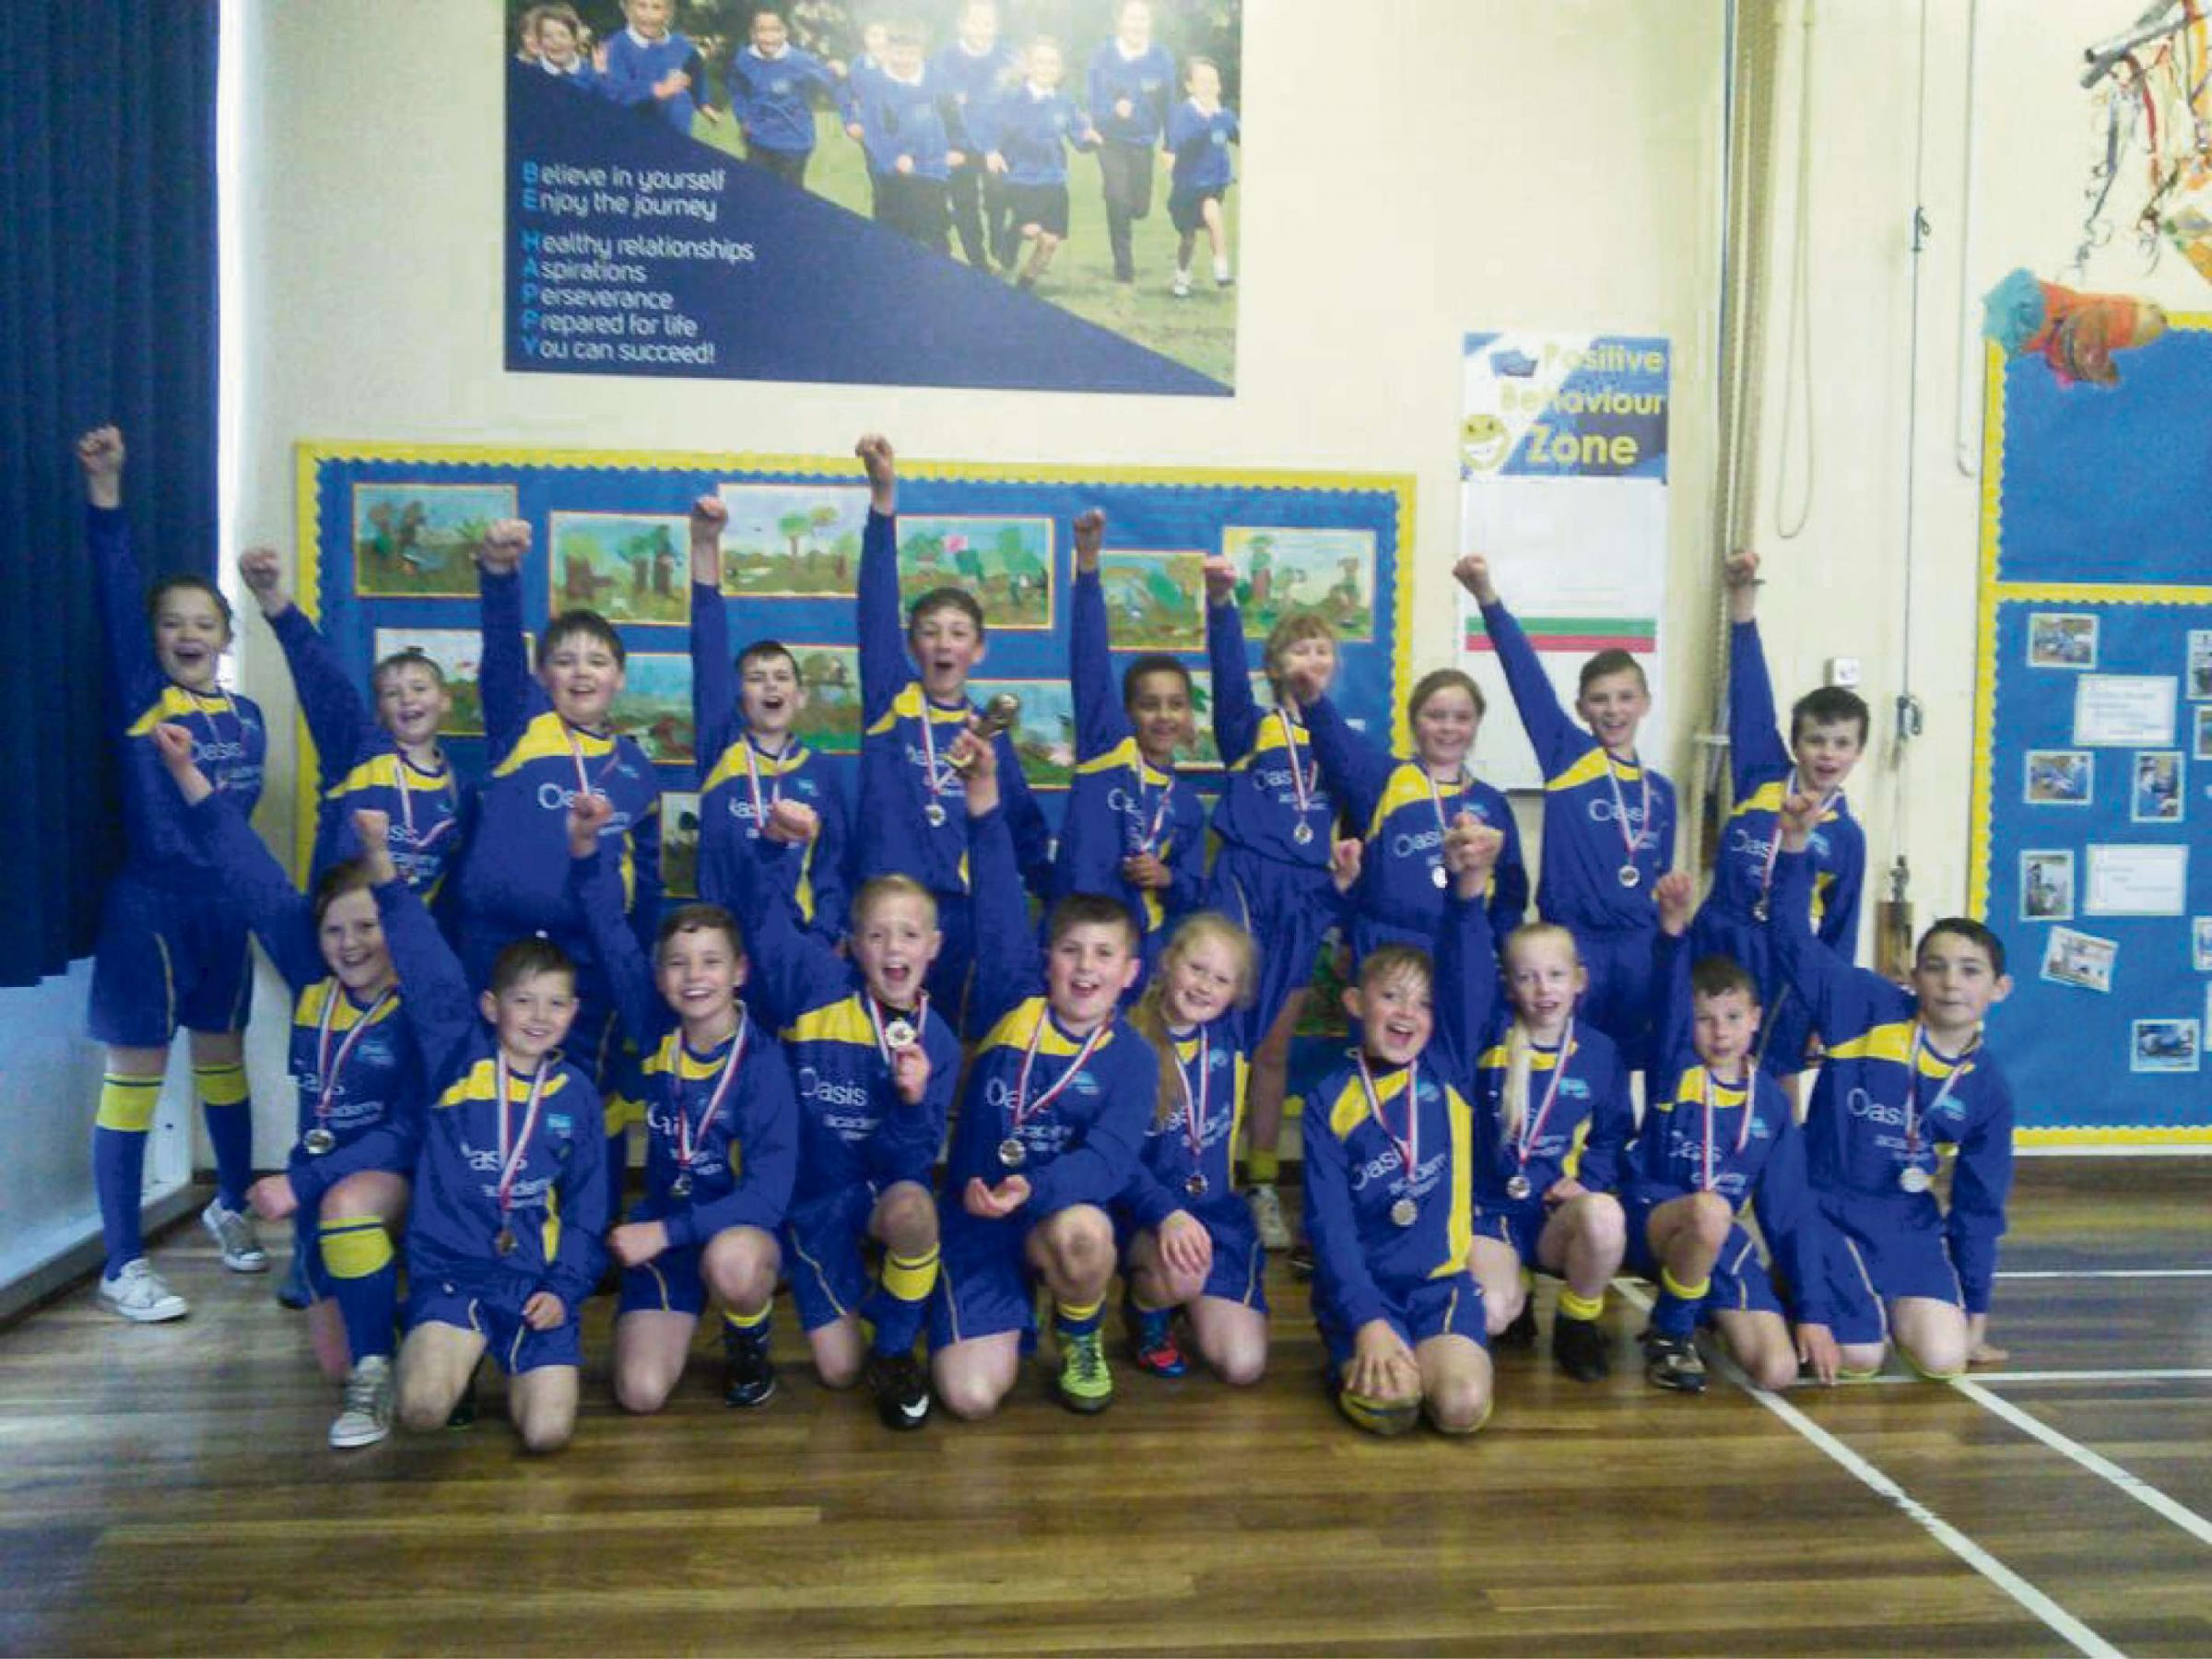 Oasis Academy Warndon pupils who took part in a tag rugby competition in Worcester.